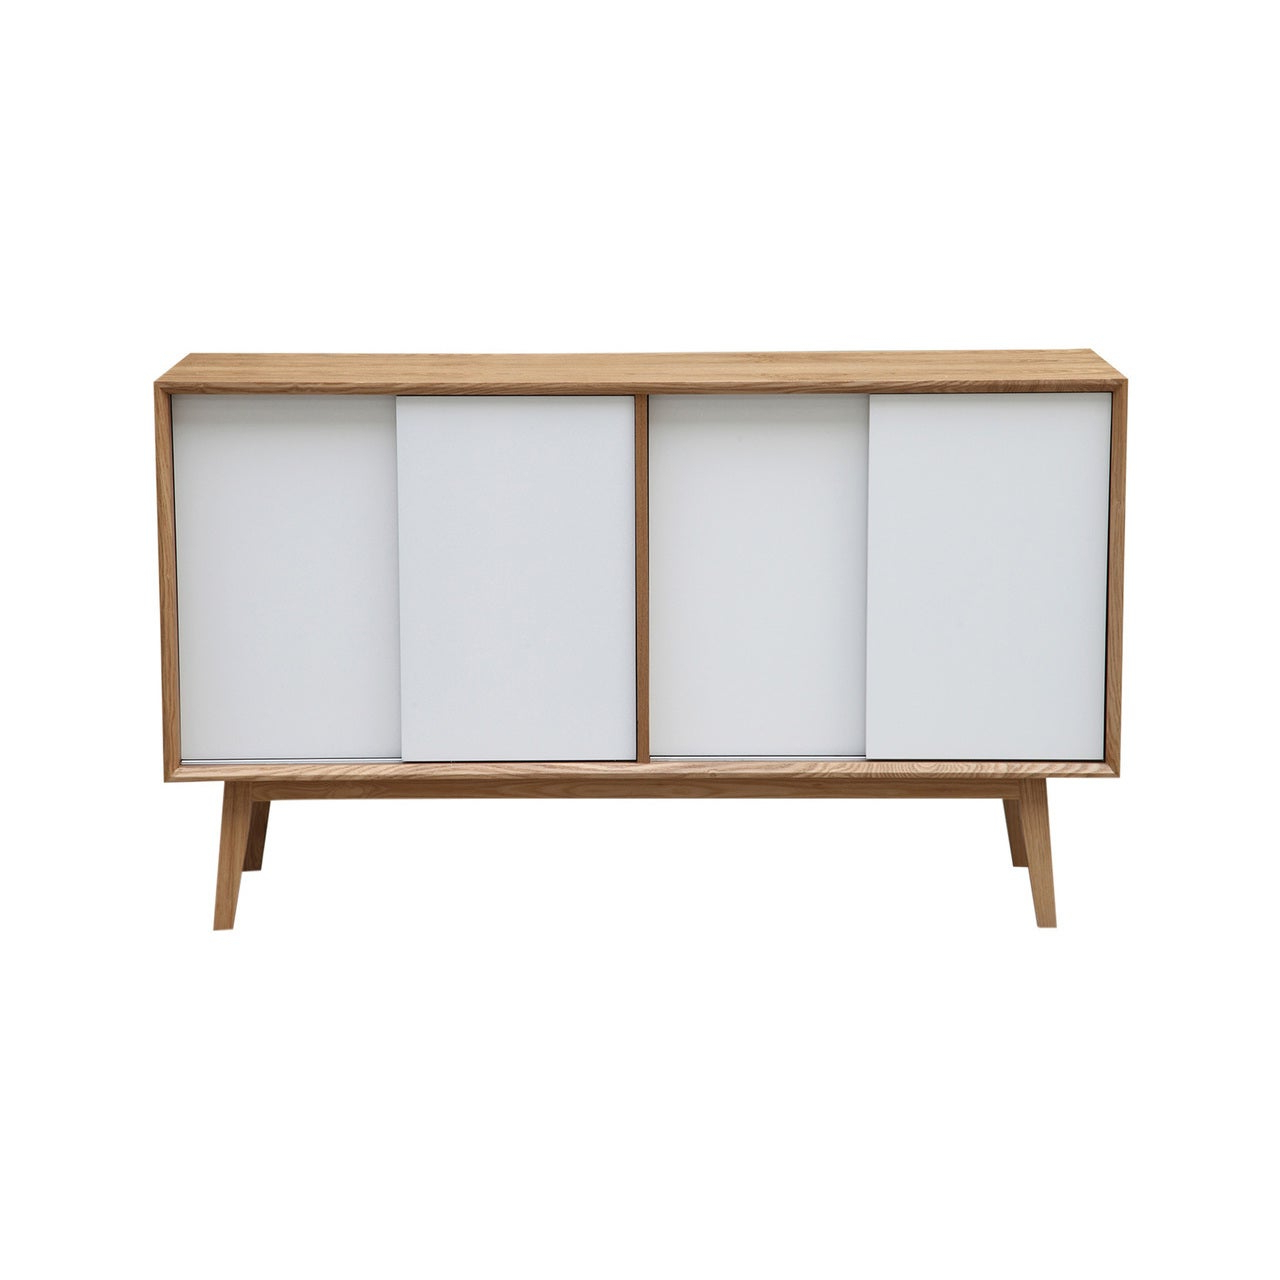 Kardiel Porter Mid Century Modern Credenza Storage Cabinet Intended For Mid Century Retro Modern Oak And Espresso Wood Buffets (Gallery 7 of 20)